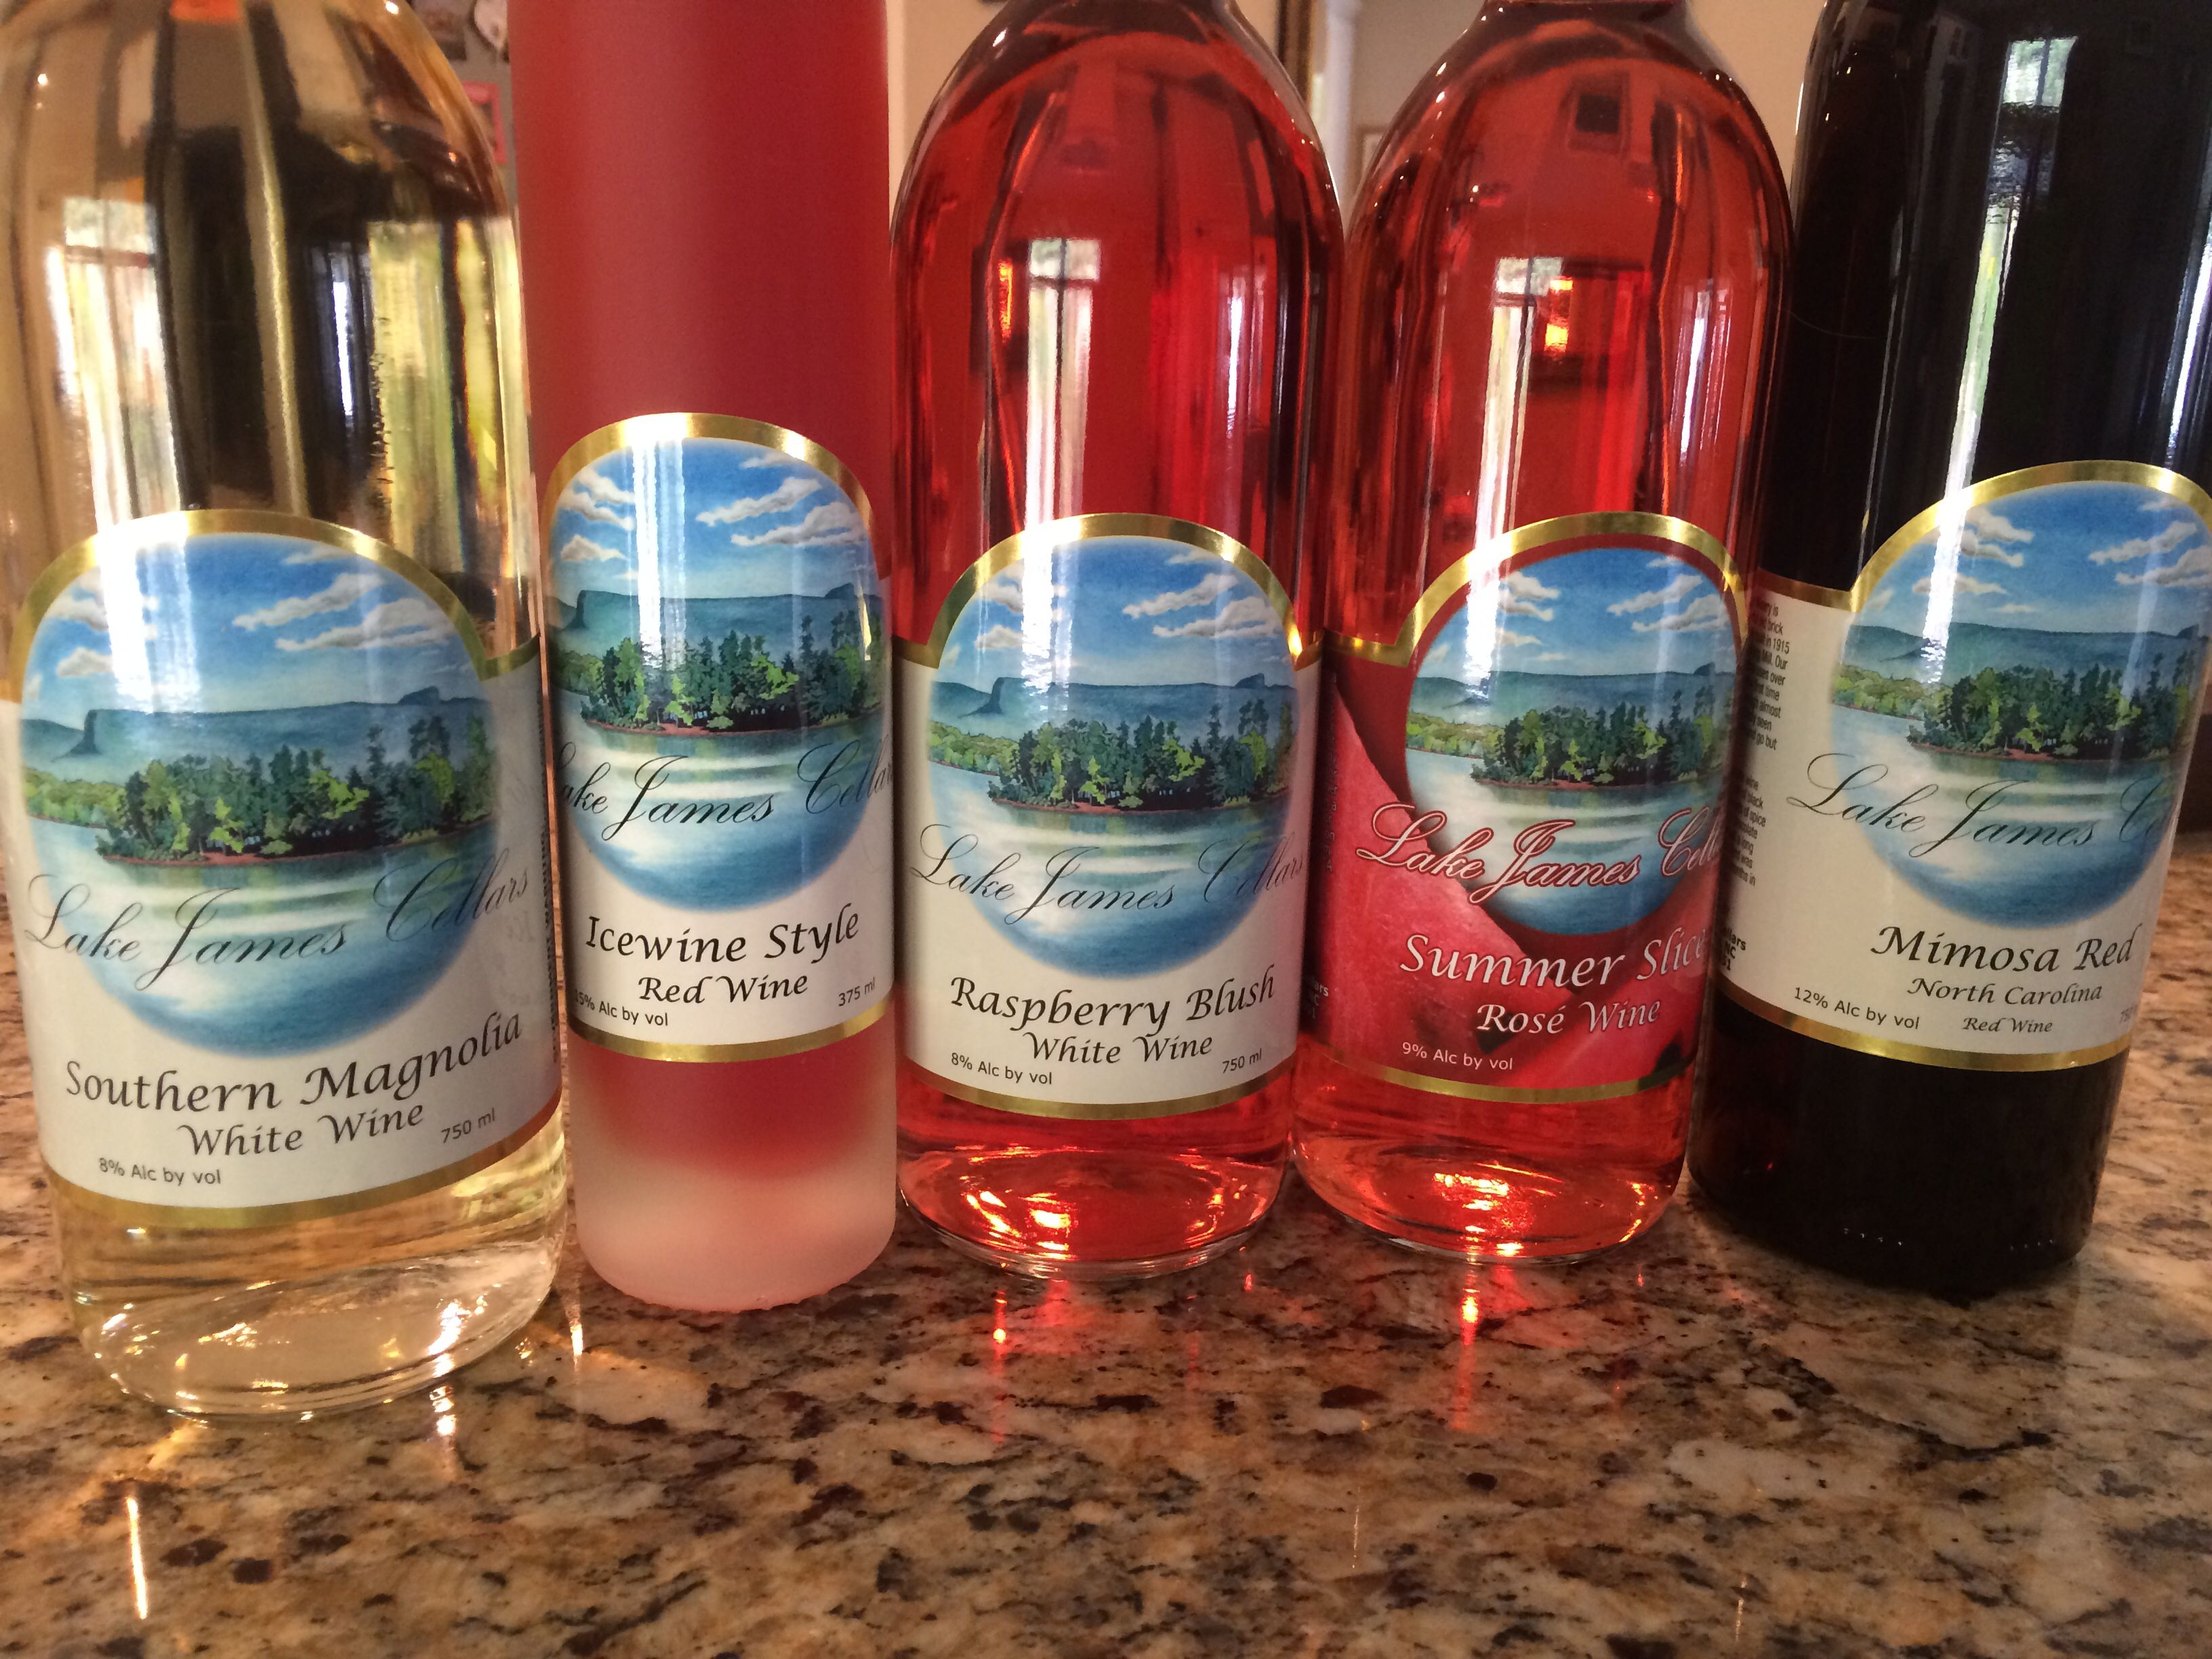 Lake James Cellars Winery Sweet Wines Sweet Wine Wines Ice Wine